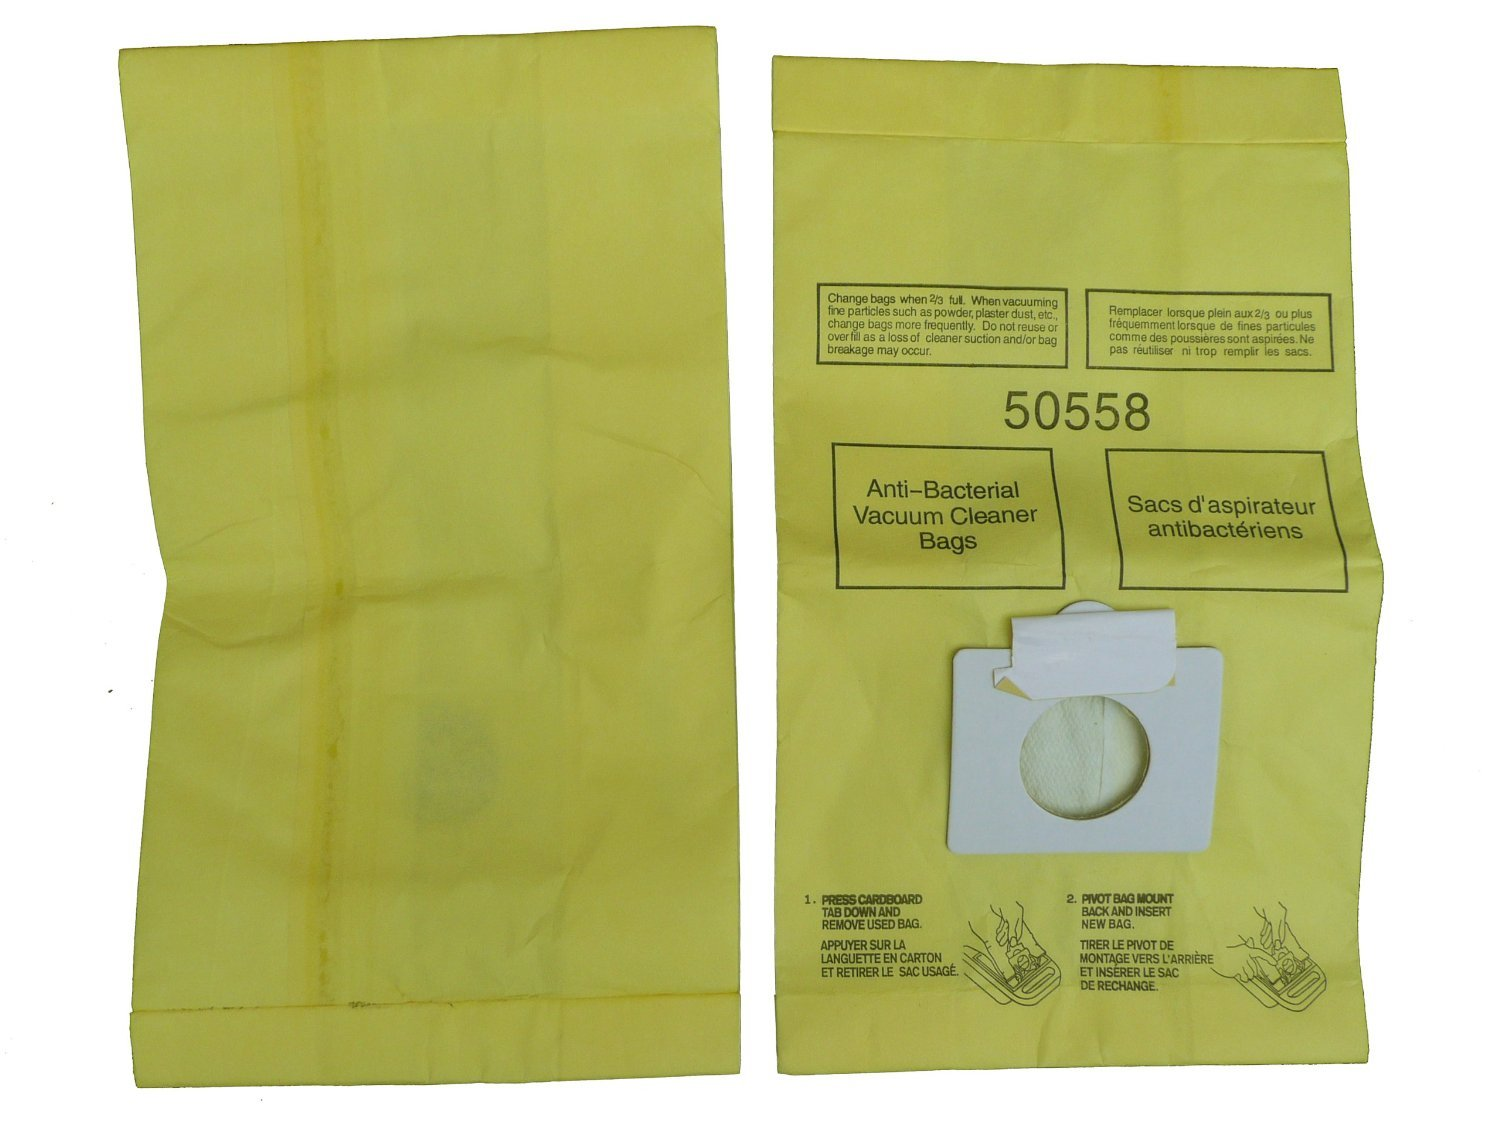 kenmore vacuum bags. amazon.com - 6 envirocare type c vacuum bags to fit kenmore canister cleaners, panasonic mc-v150m, 20-50558, mc-v9600 thru v9699, e